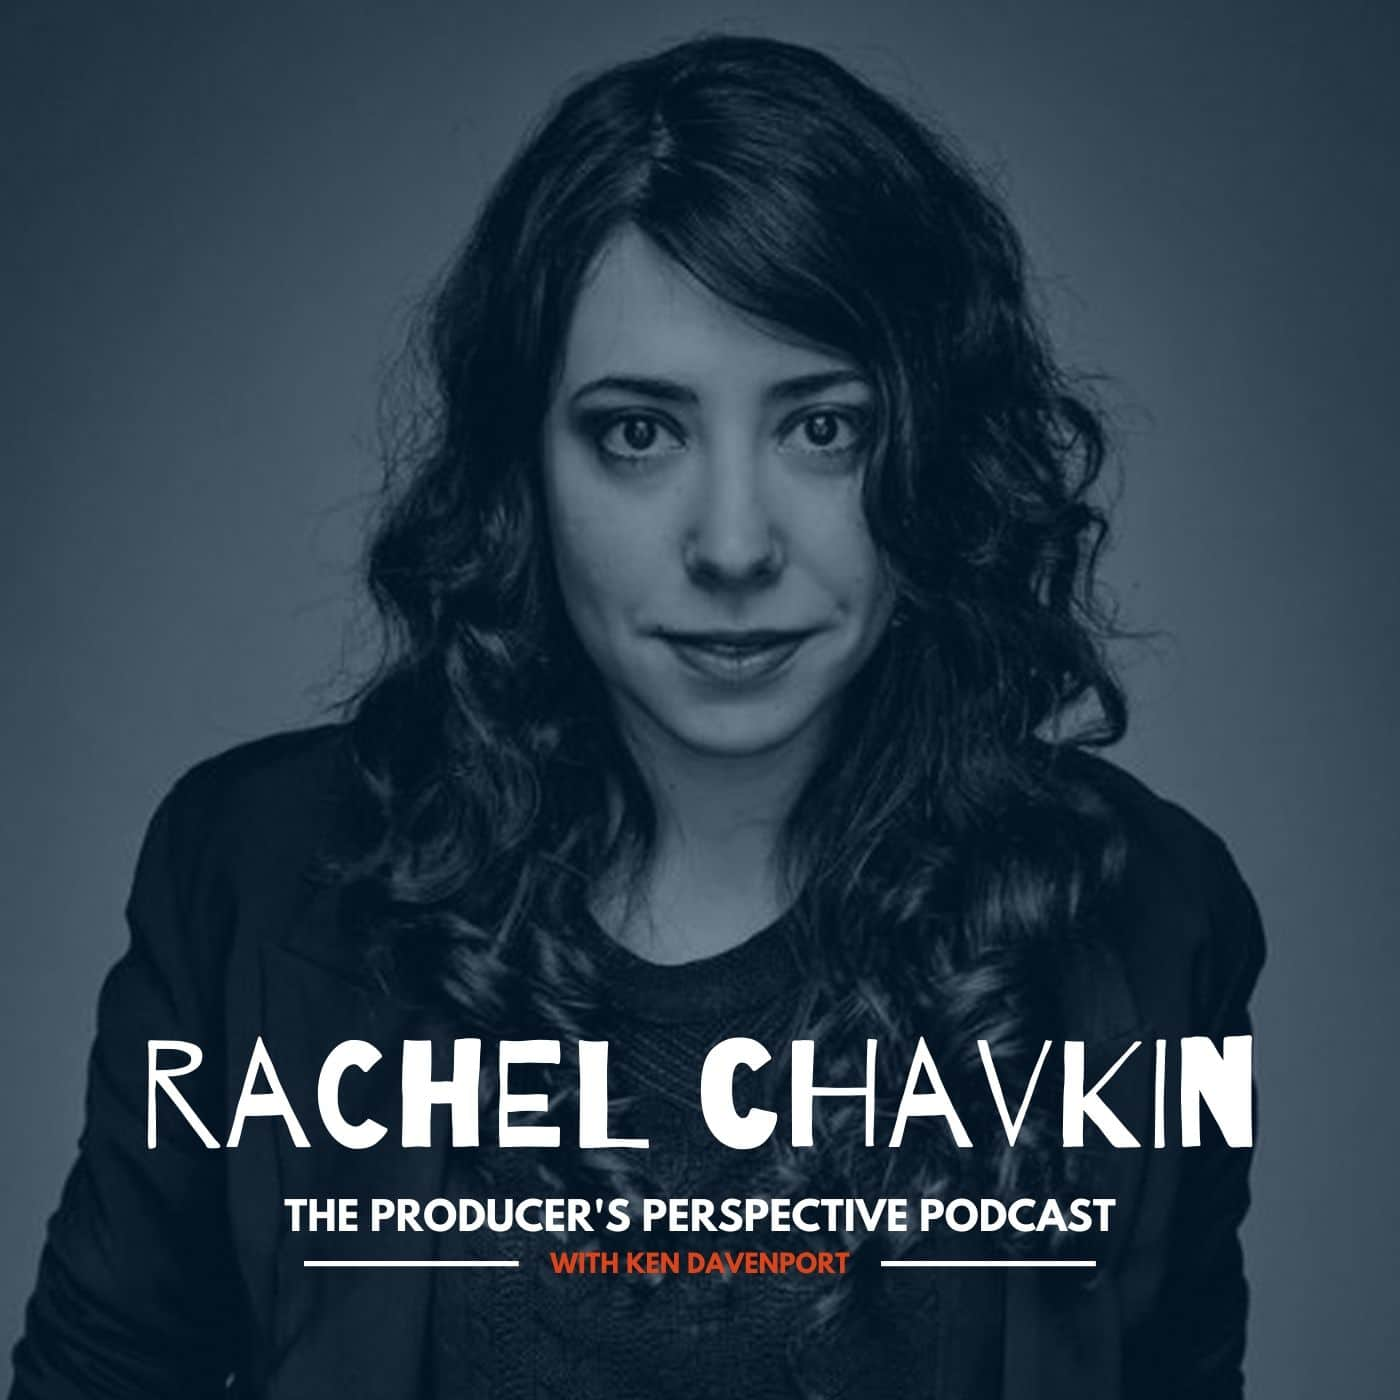 Ken Davenport's The Producer's Perspective Podcast Episode 169 - Rachel Chavkin